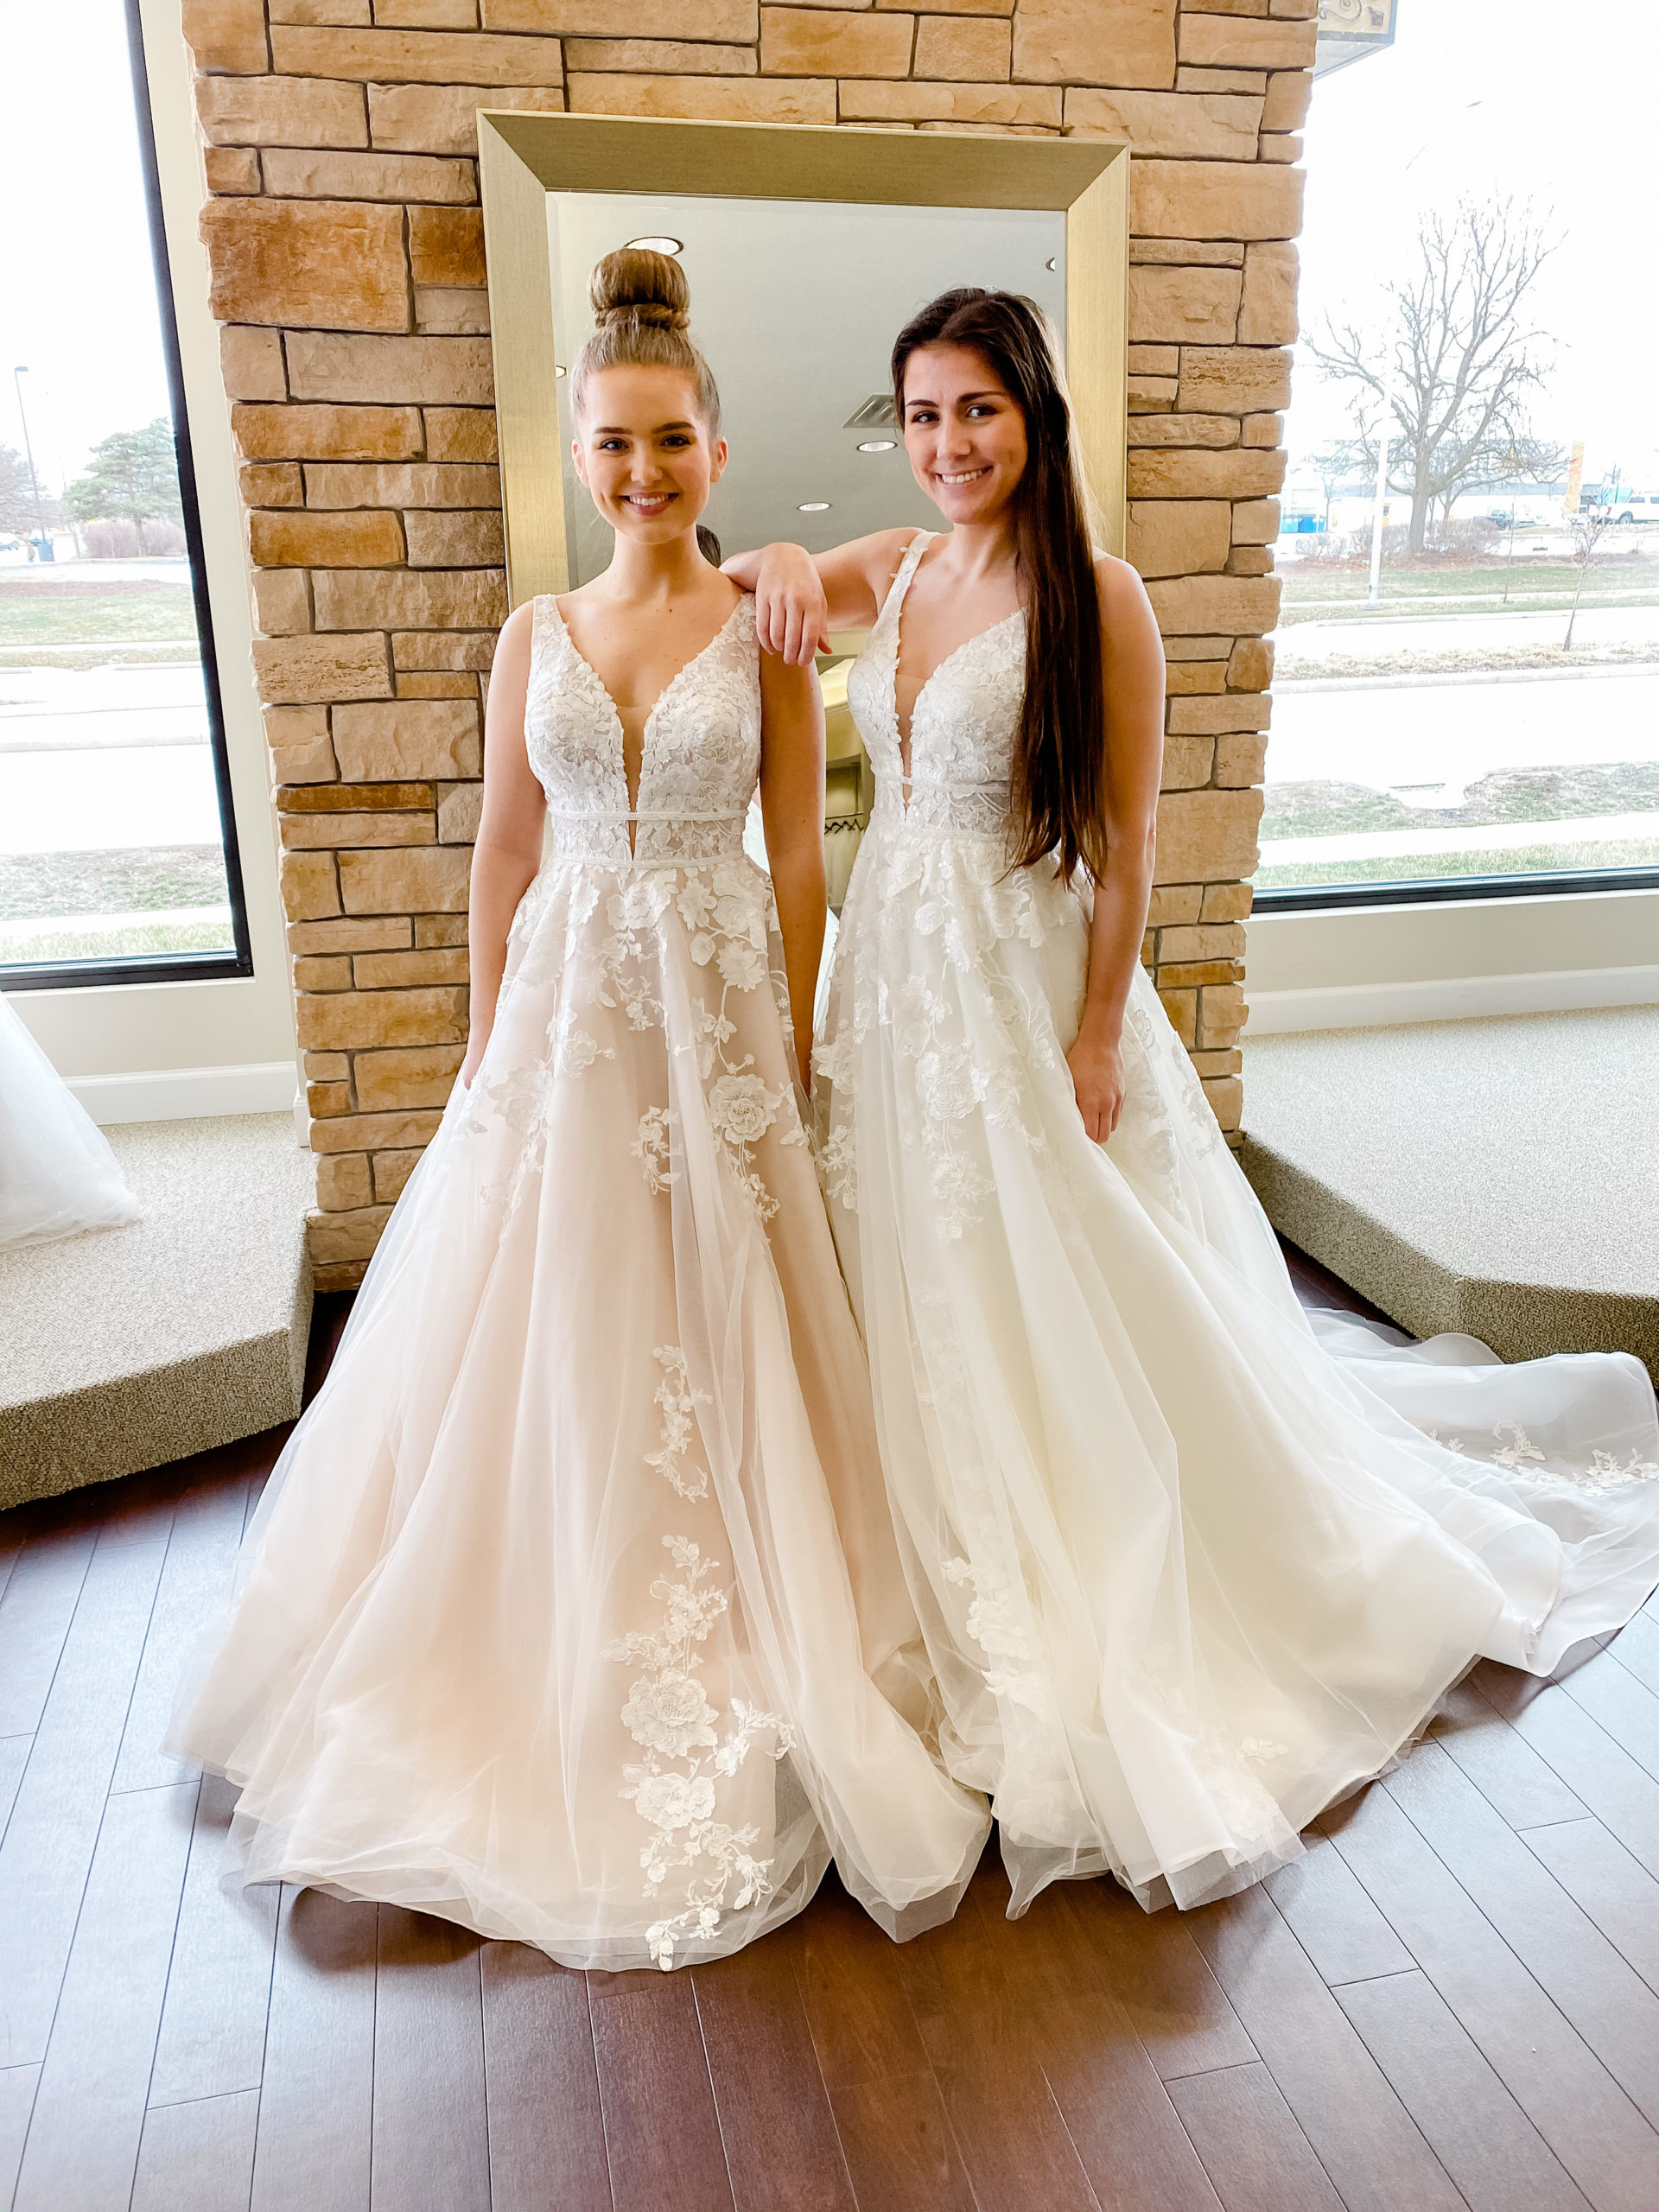 In Which Color Should I Order My Wedding Dress Ivory White Or Blush One Fine Day